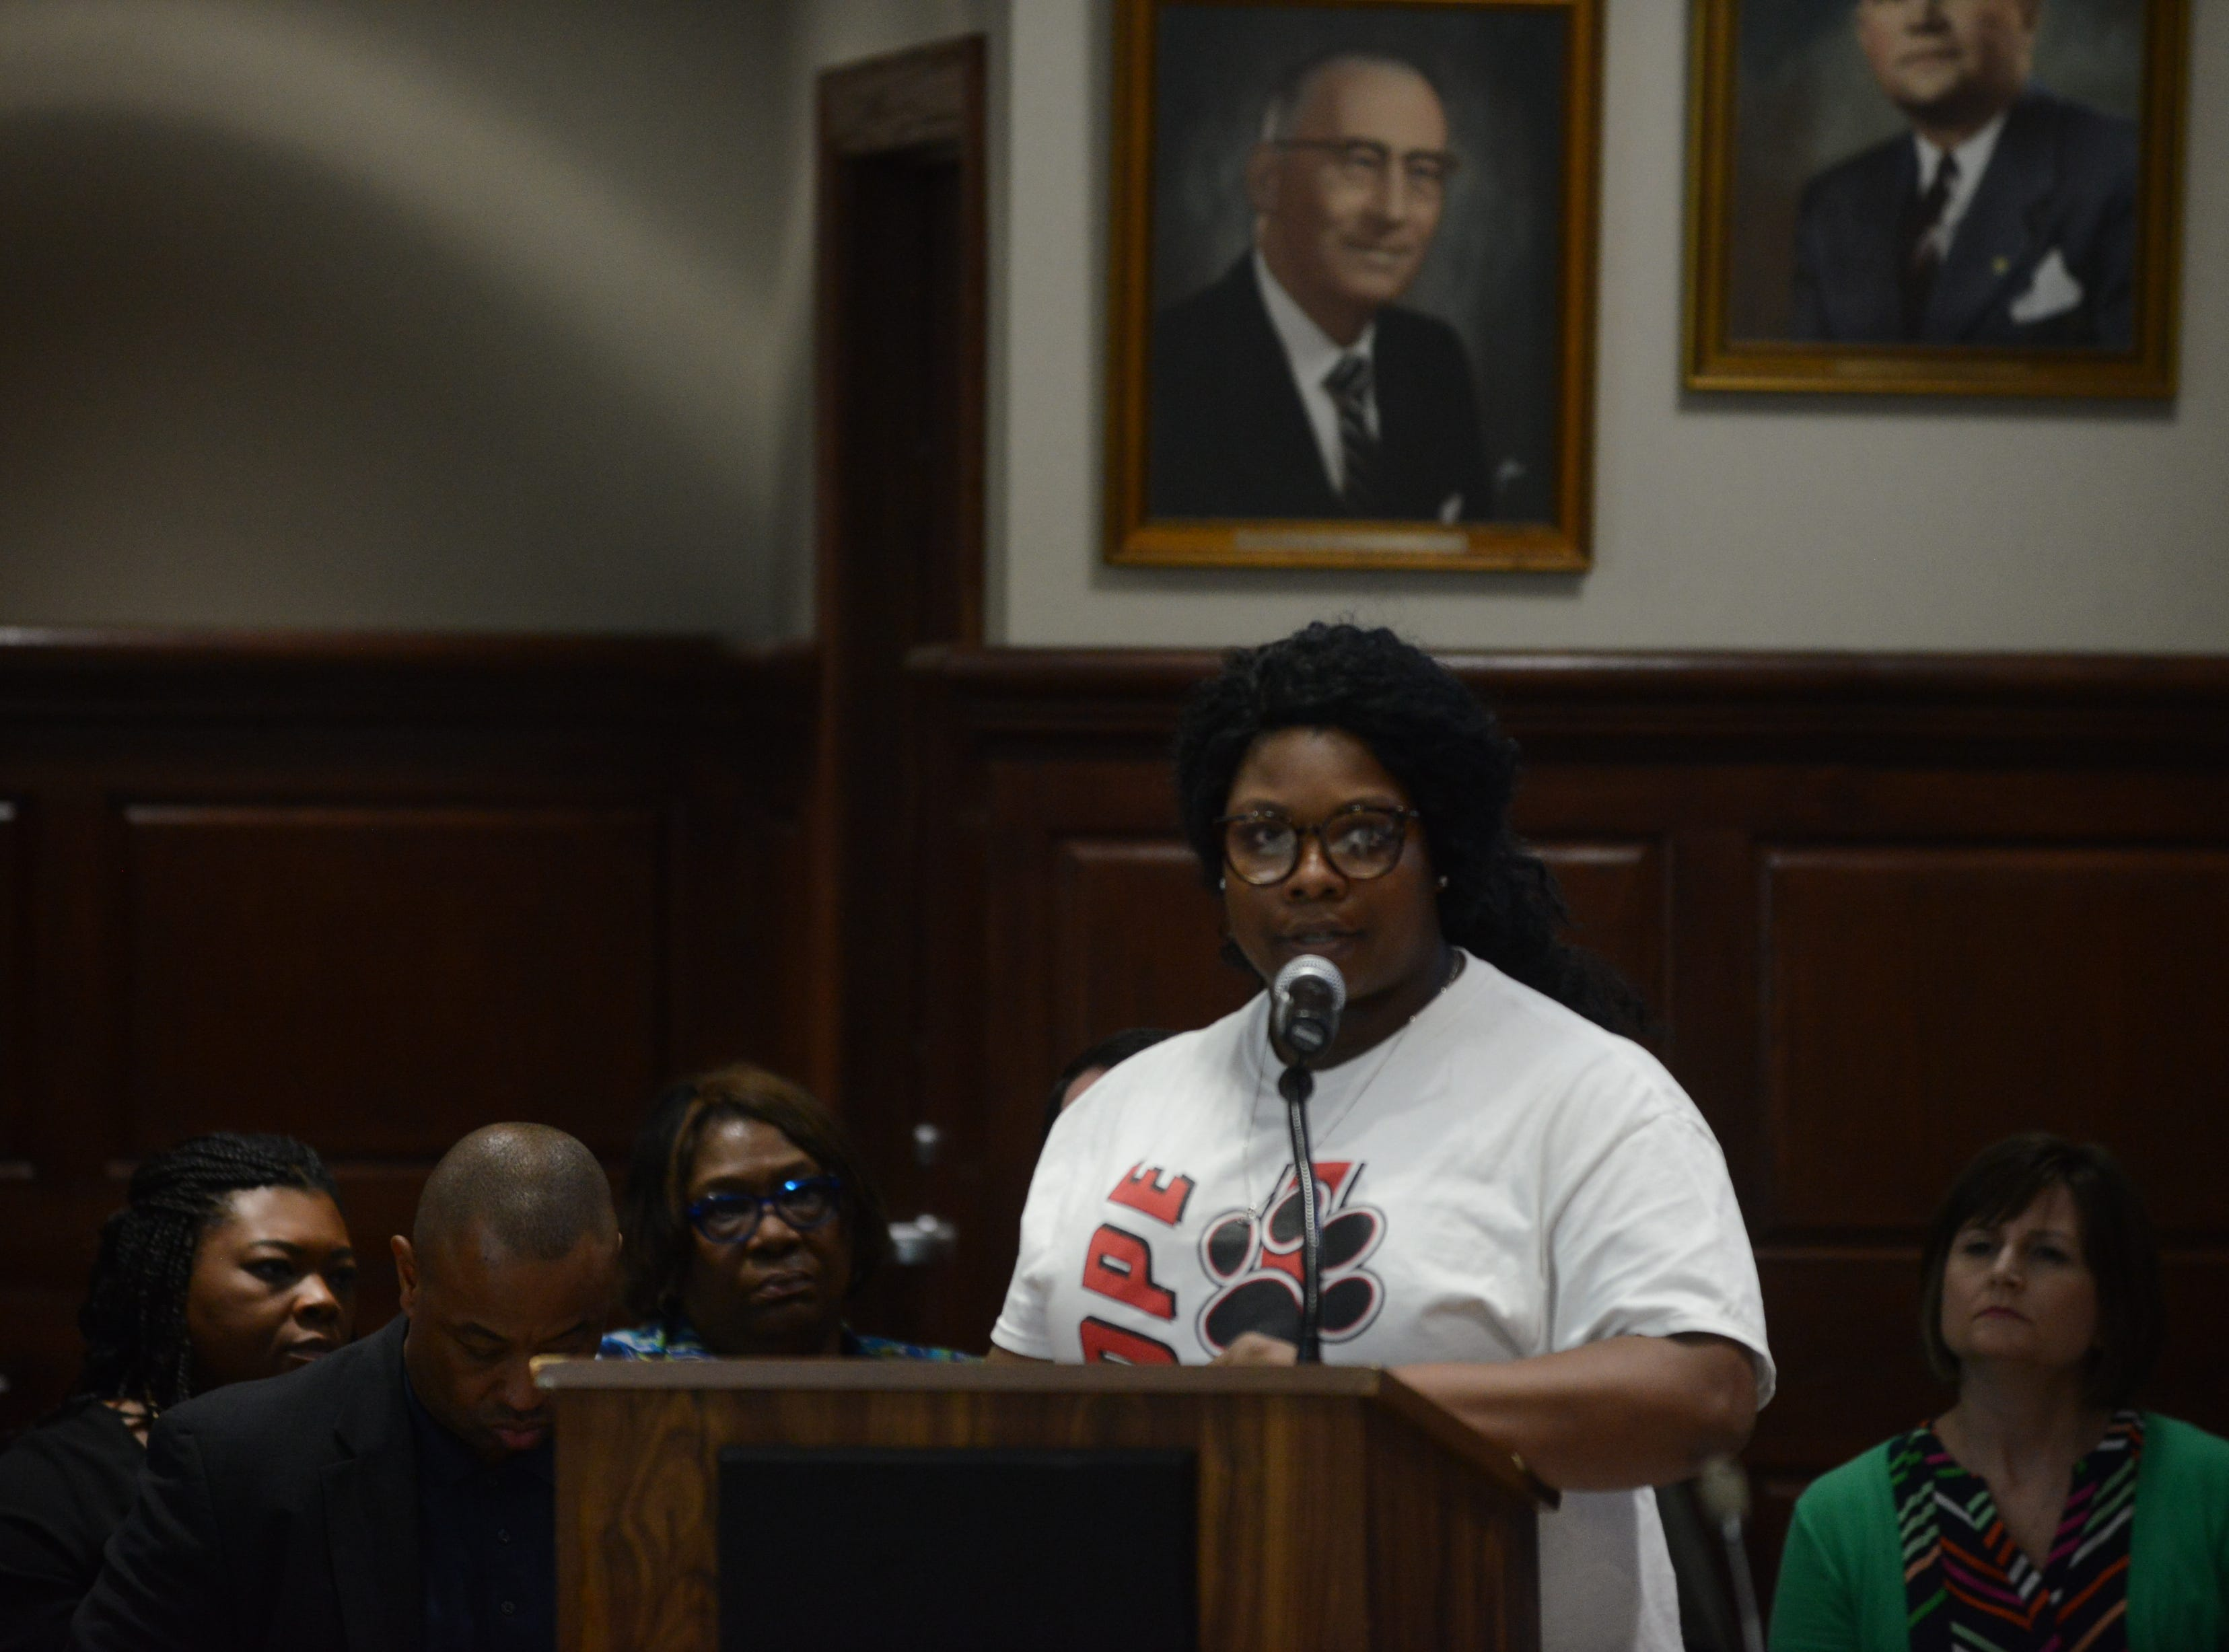 Nicole Harris, a parent of a Pope Elementary School student, said the school building could not handle the increasing number of students during public comment at the JMC school board meeting at Jackson City Hall on Thursday night.